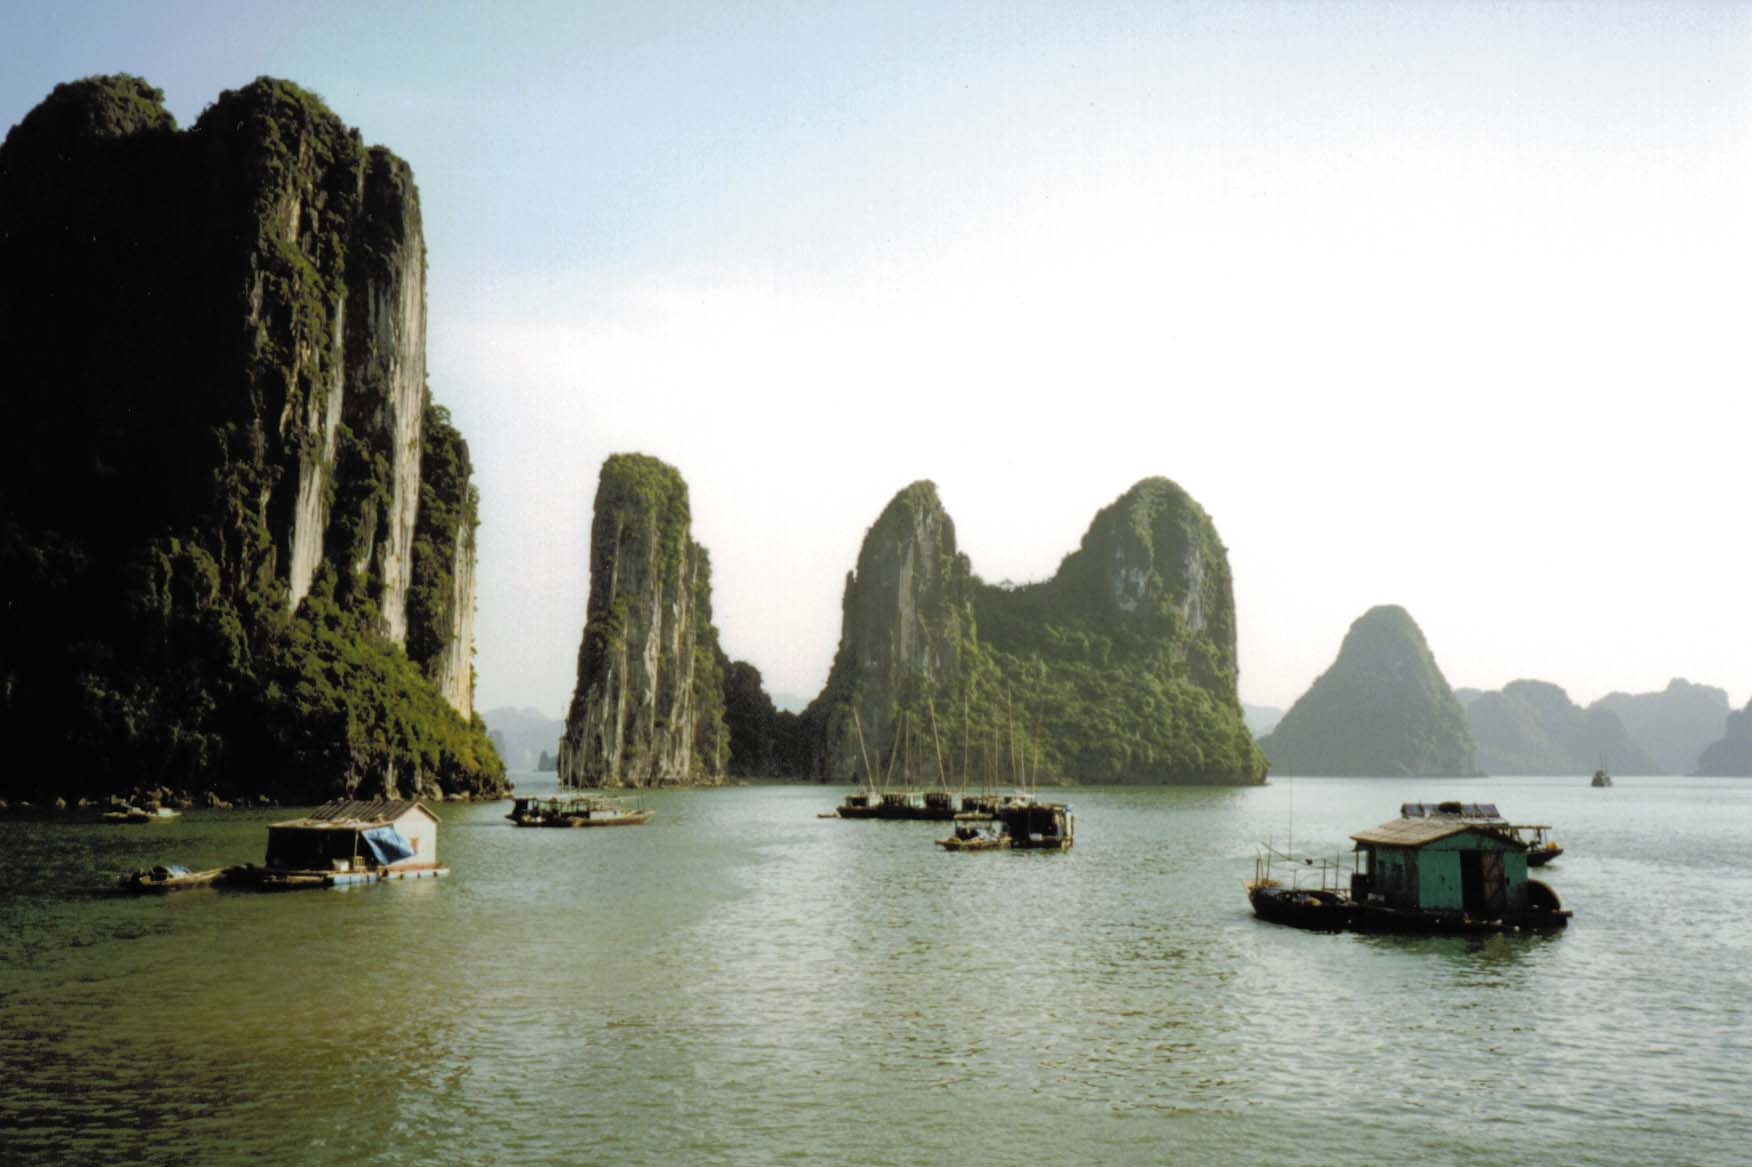 Floating boat houses (Halong Bay, Vietnam) - From the front cover